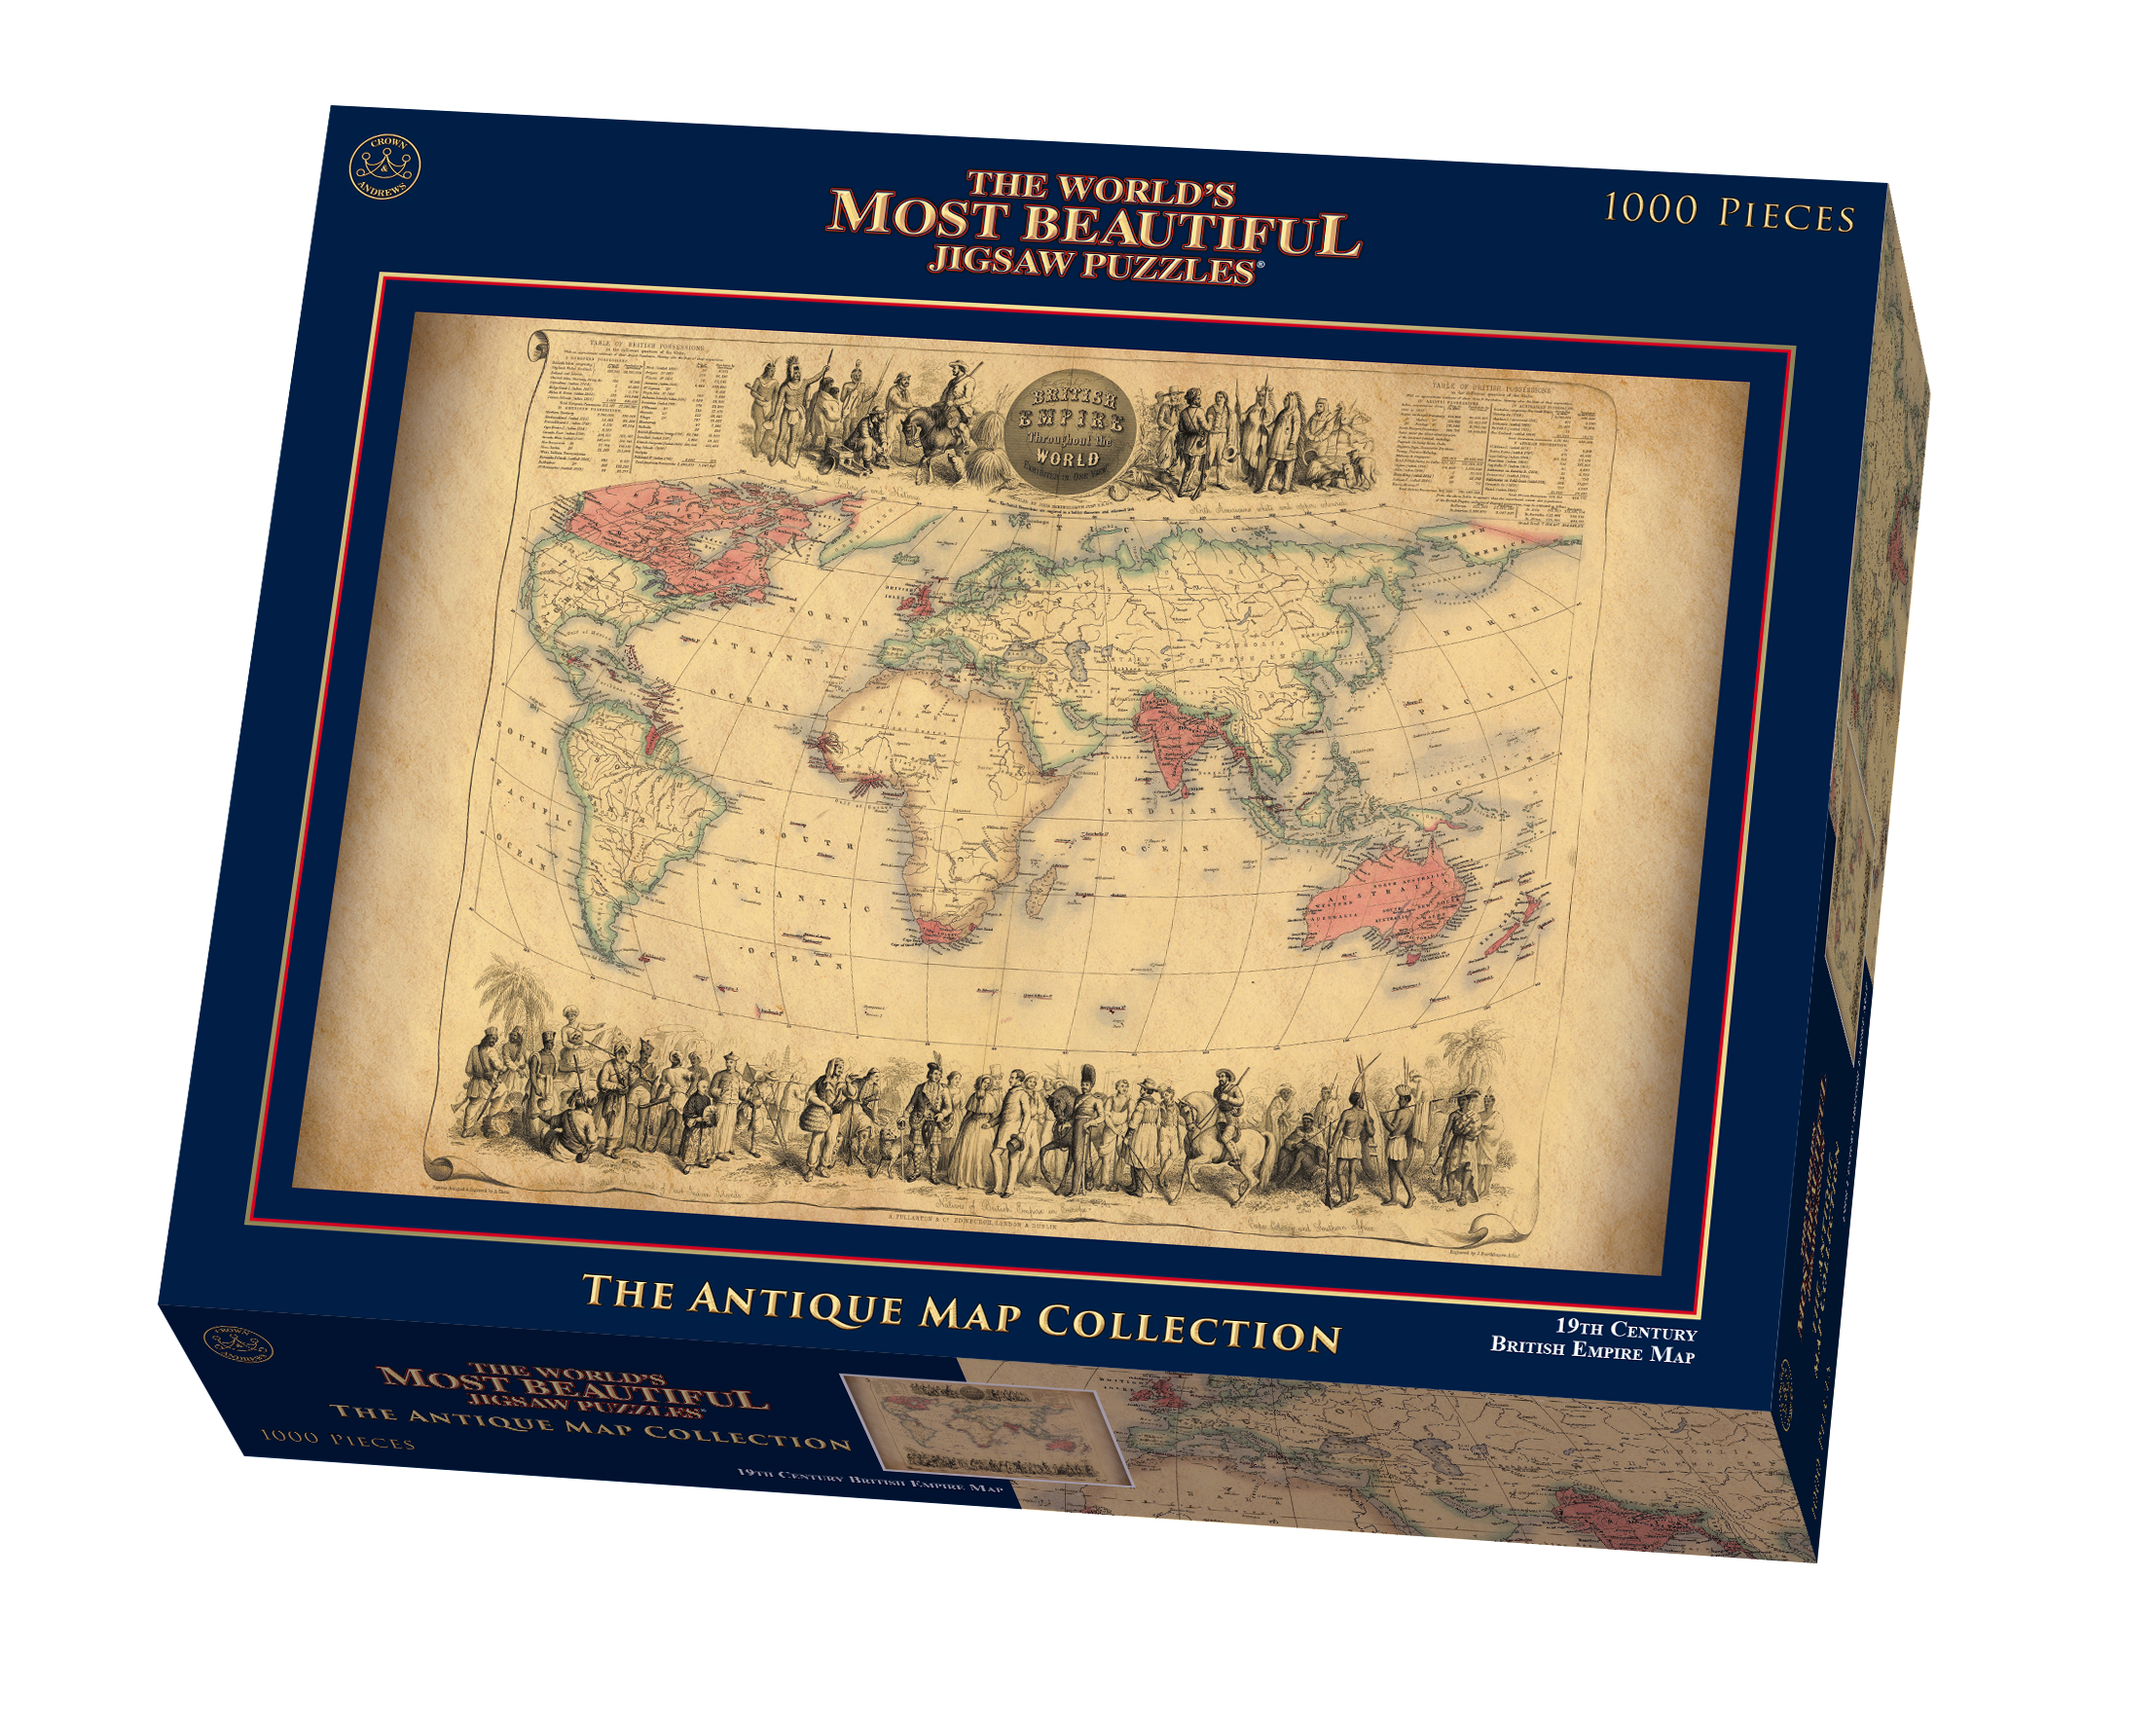 The worlds most beautiful 19th century british empire map jigsaw the worlds most beautiful 19th century british empire map jigsaw puzzle goliath games goliath games gumiabroncs Choice Image